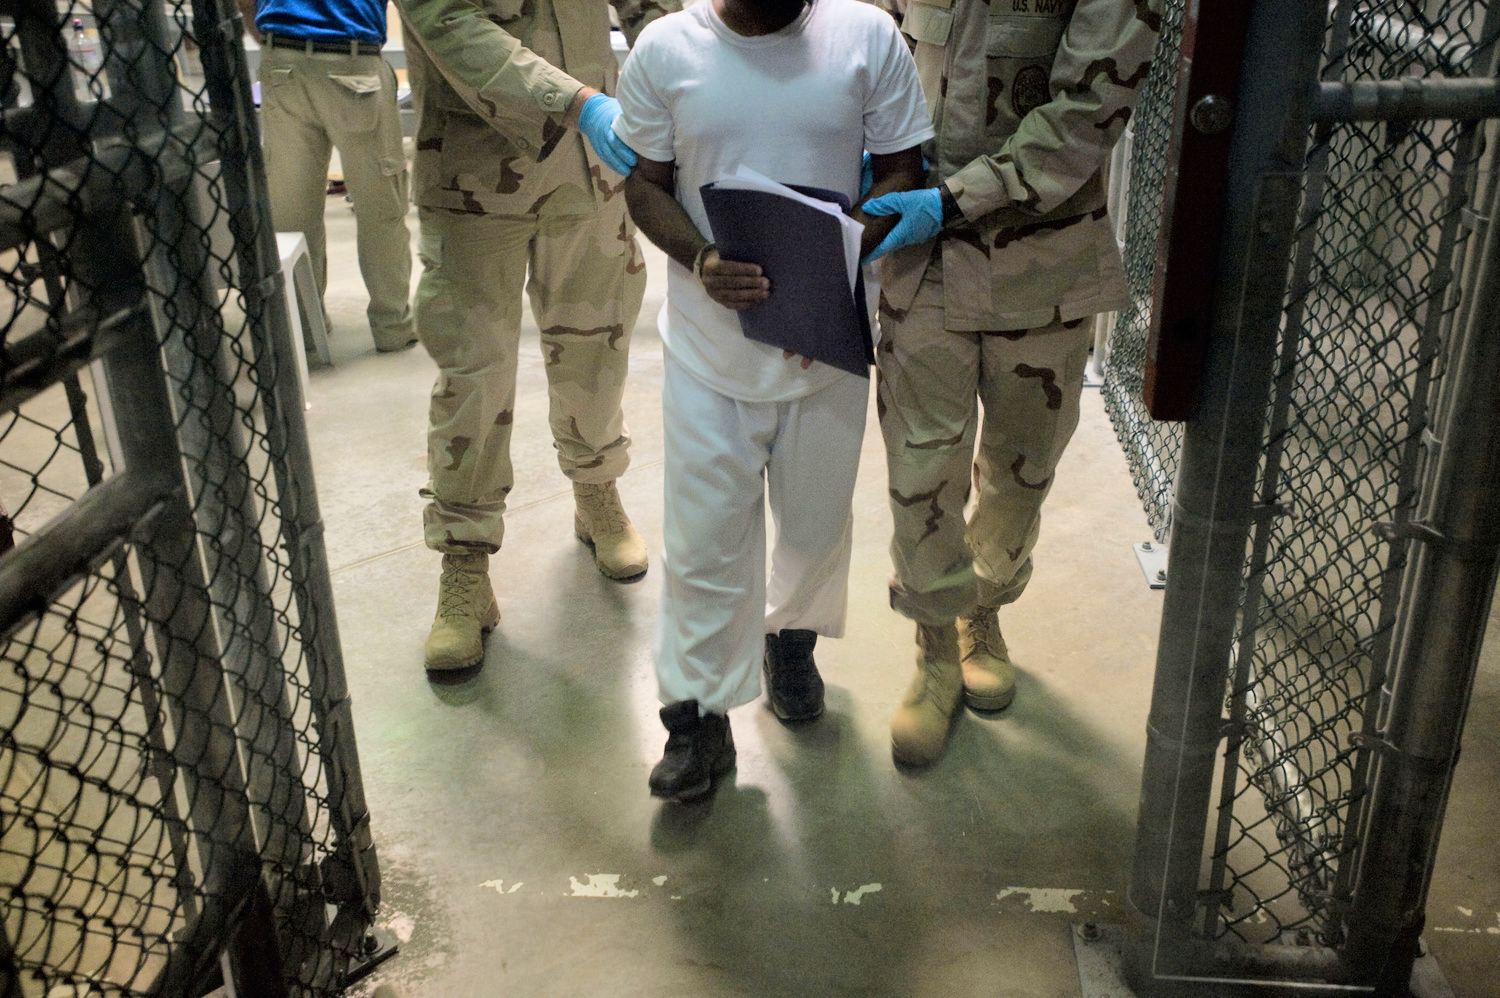 A shackled detainee is moved out of a pod by camp guards in Camp 6 at the Guantanamo Bay Detention Facility.Mar 30, 2010  ©Louie Palu/ZUMAPRESS.com